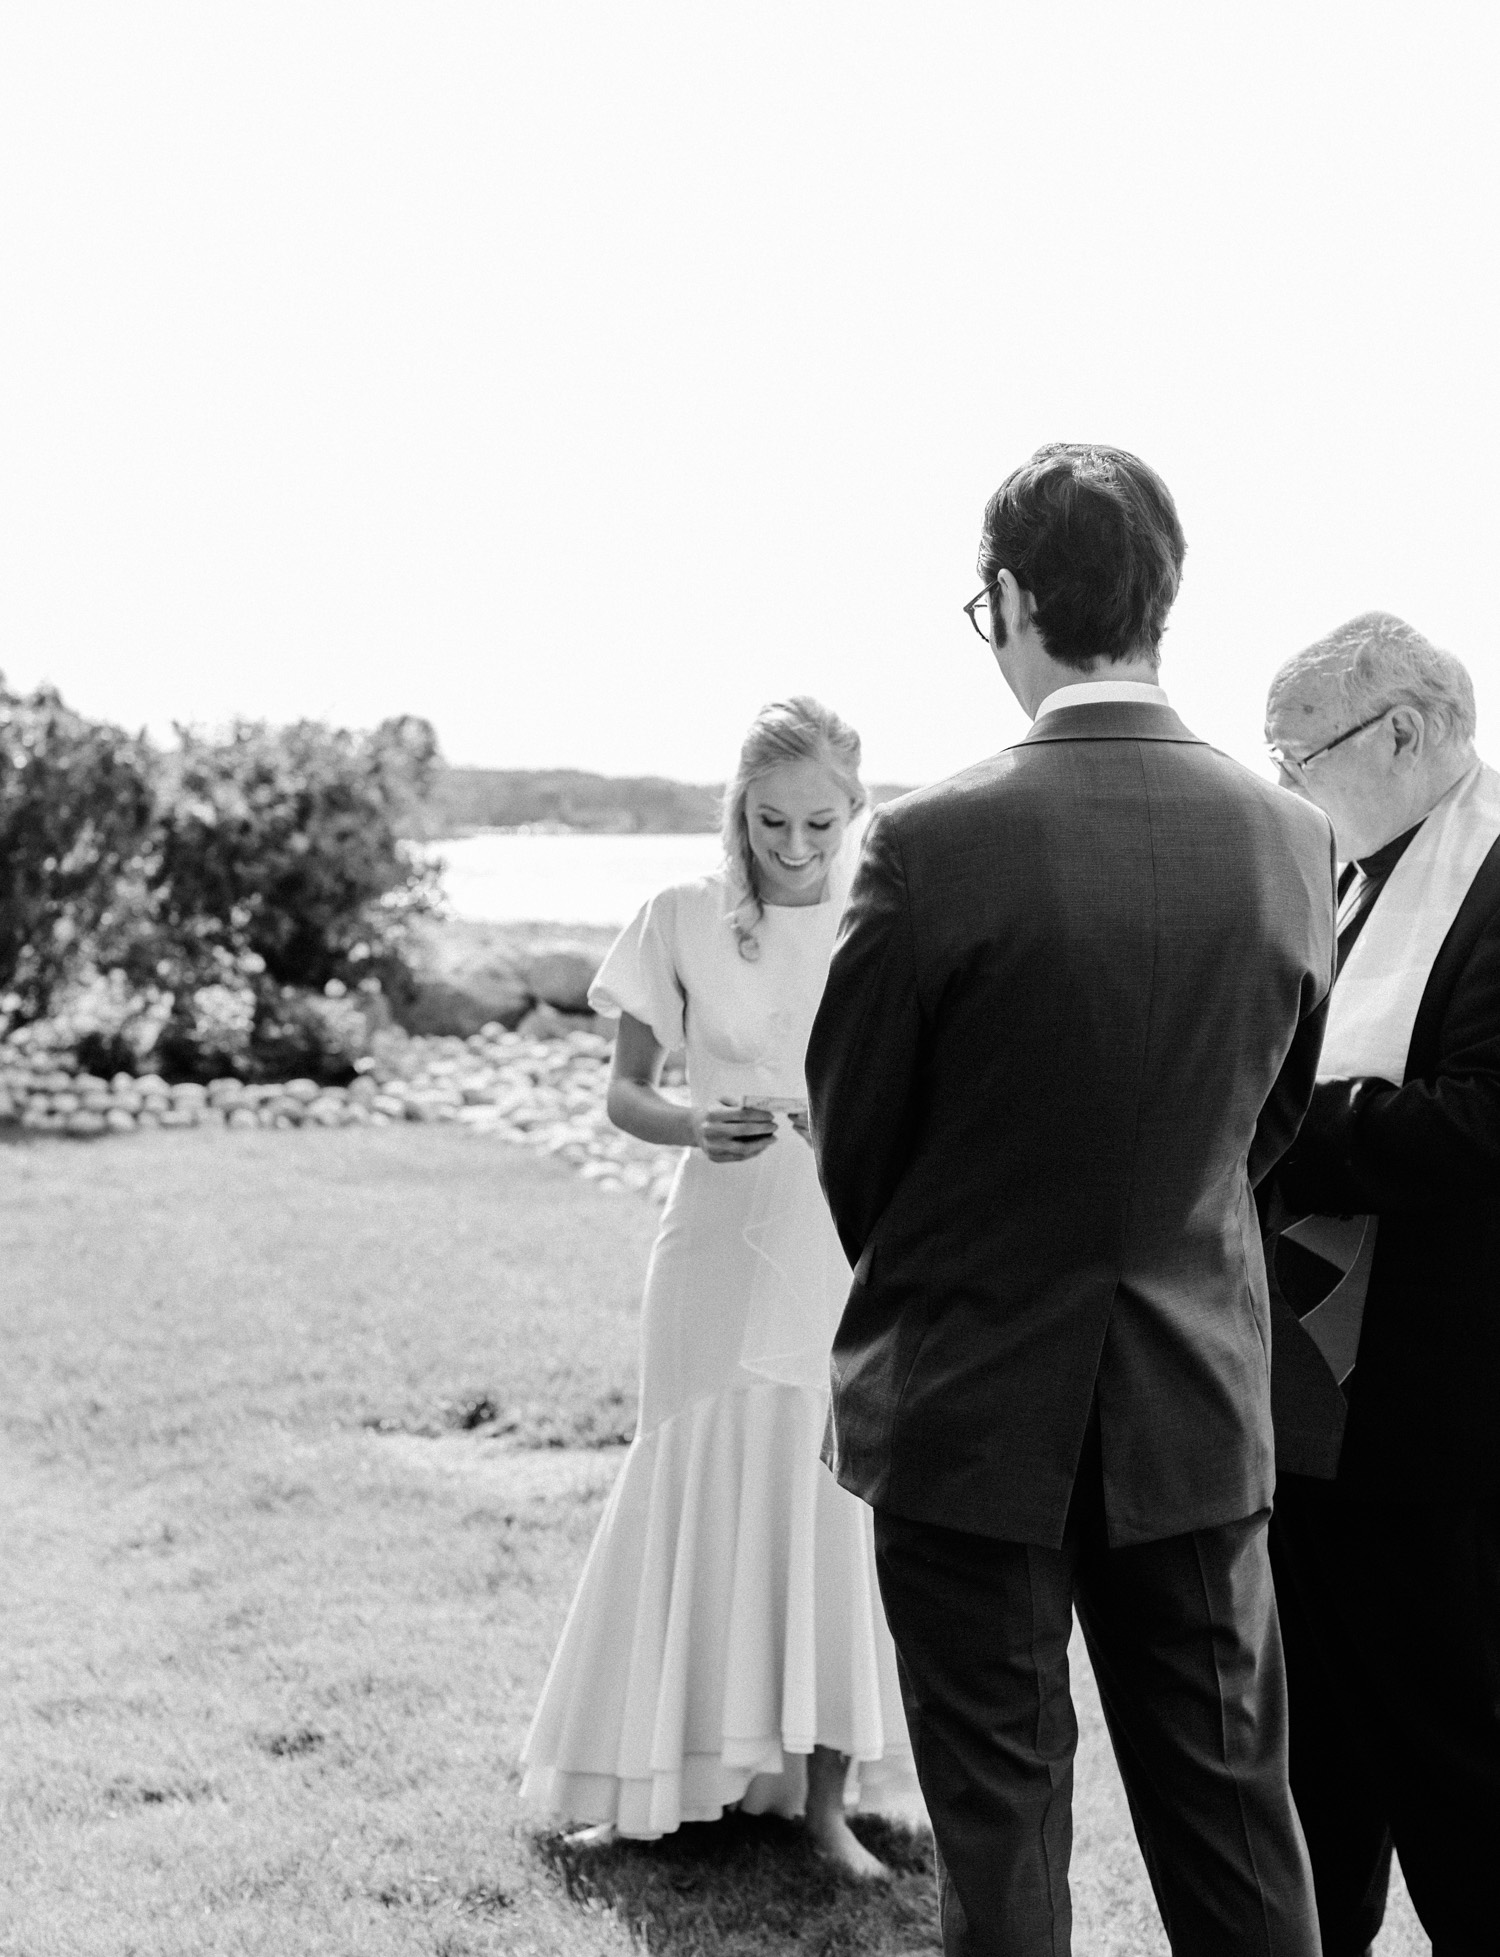 A bride smiles while reading her vows during her wedding ceremony on lake Michigan